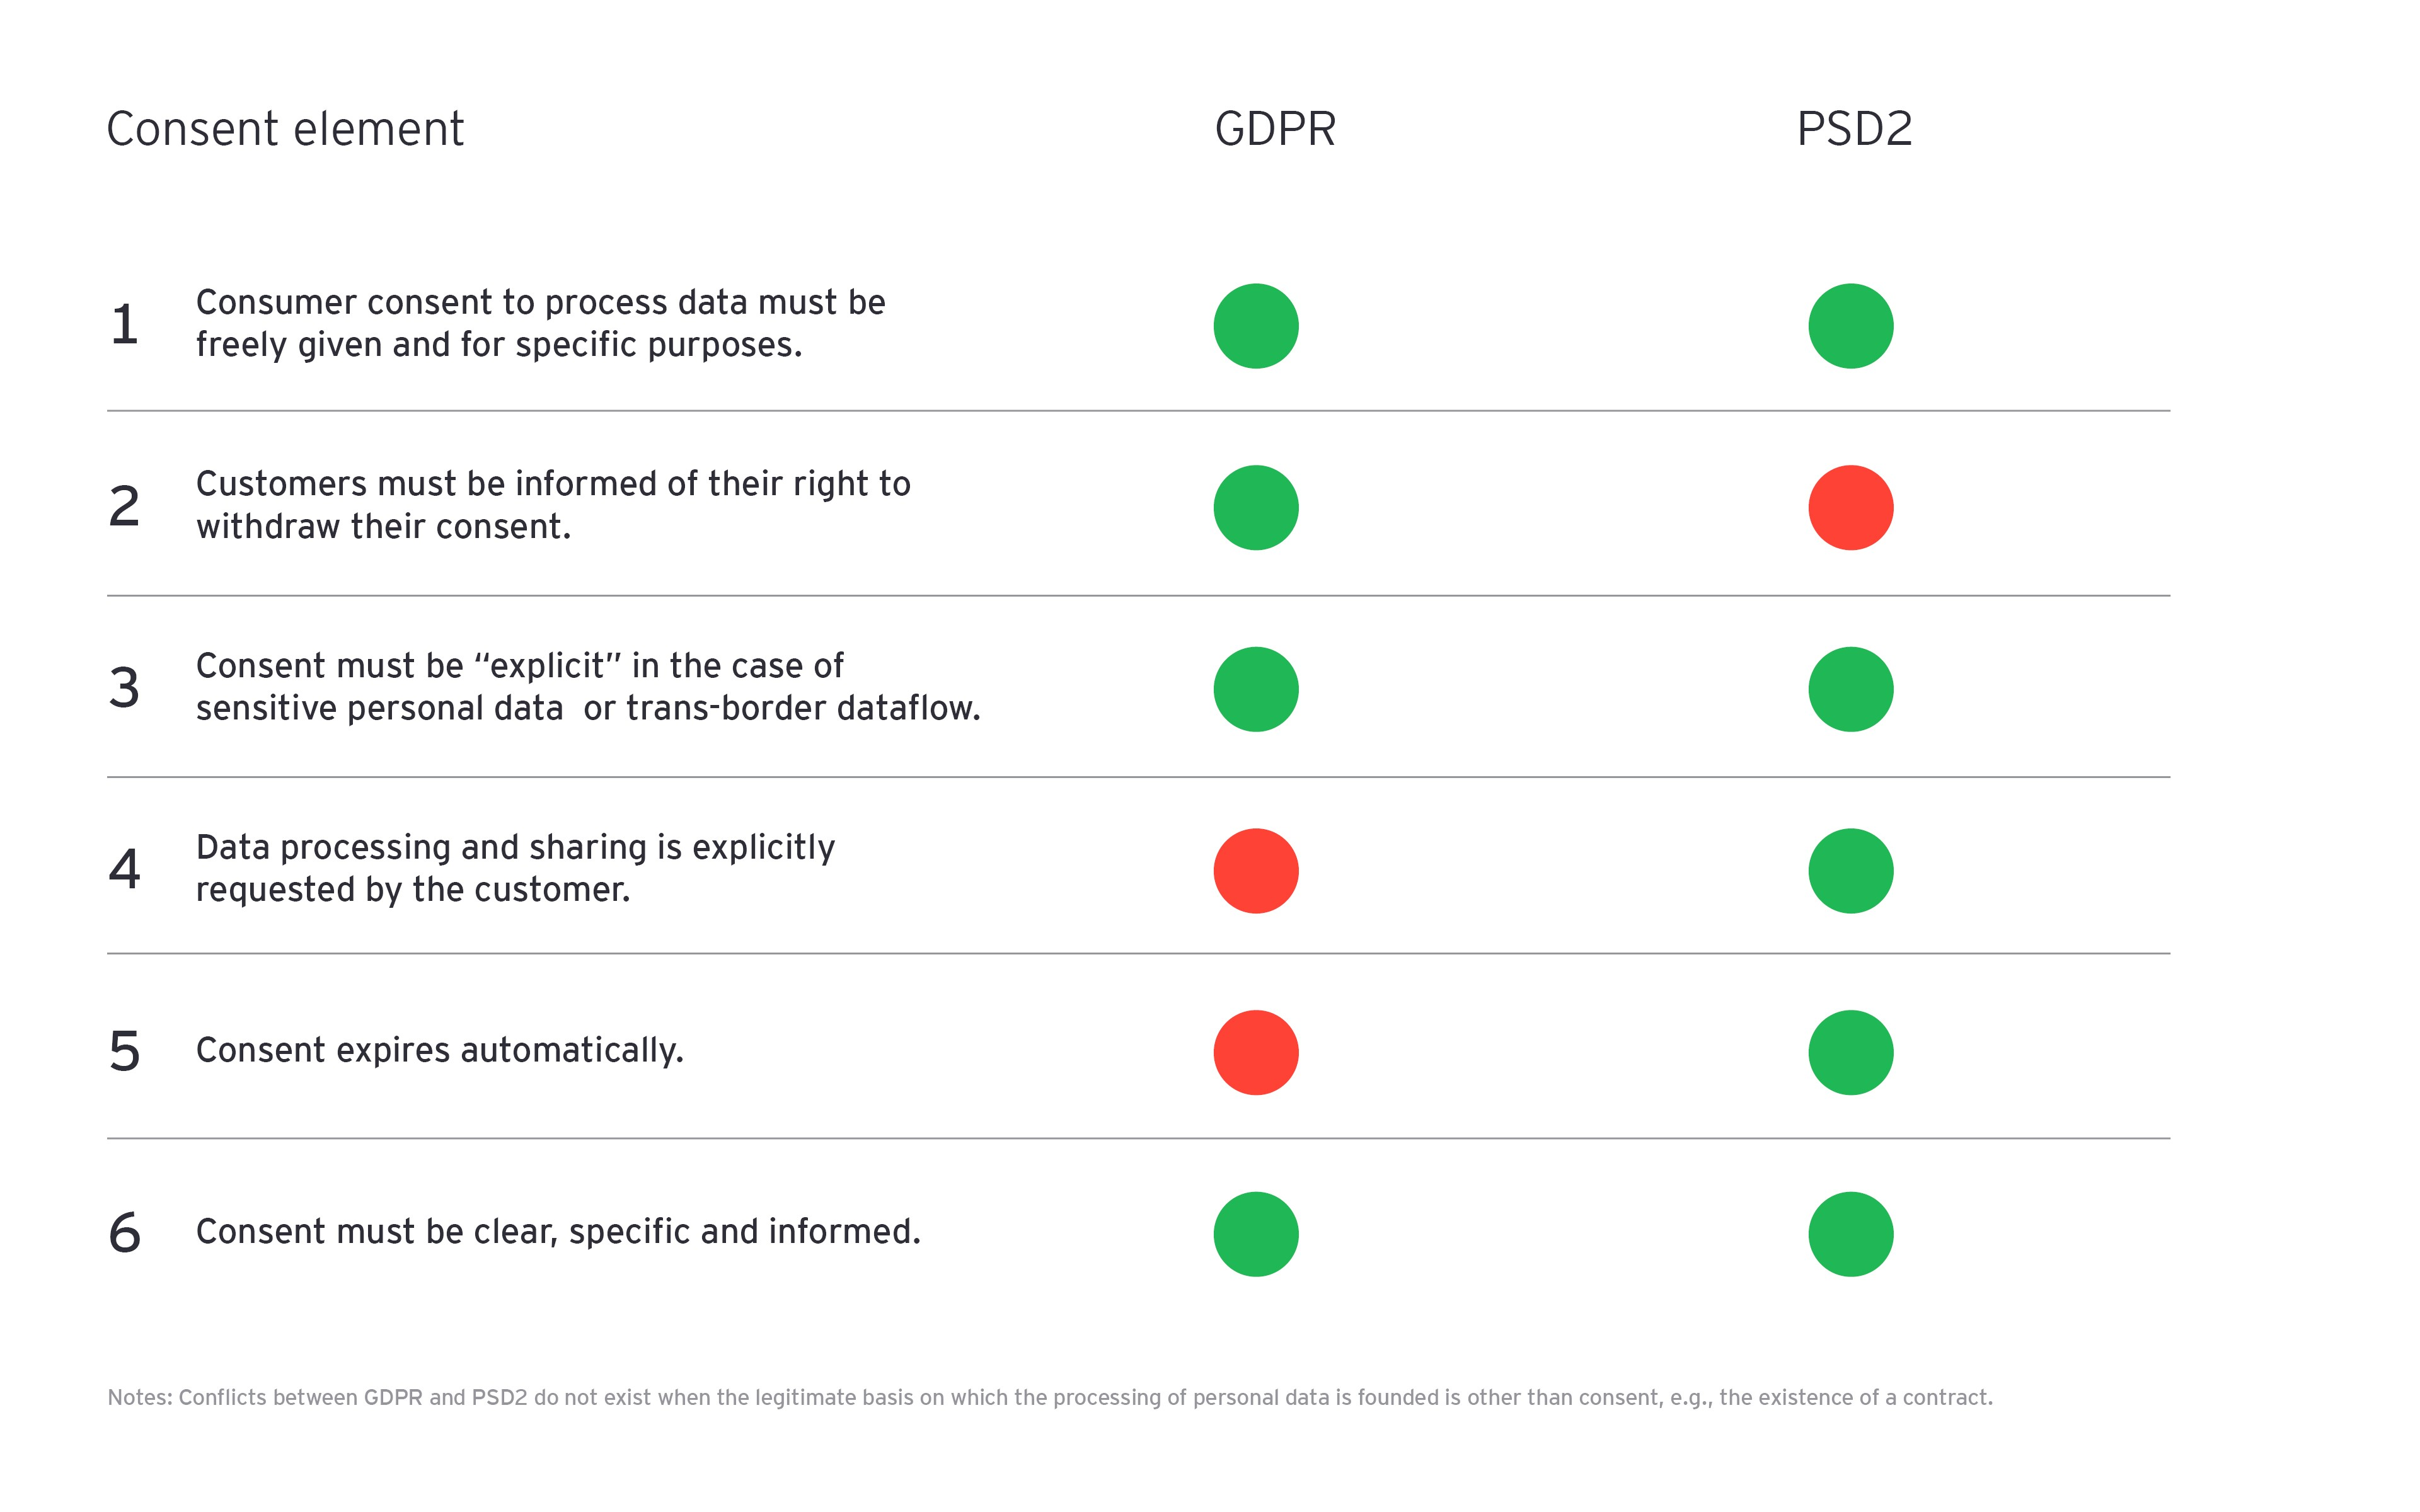 psd2 vs. gdpr the consent element